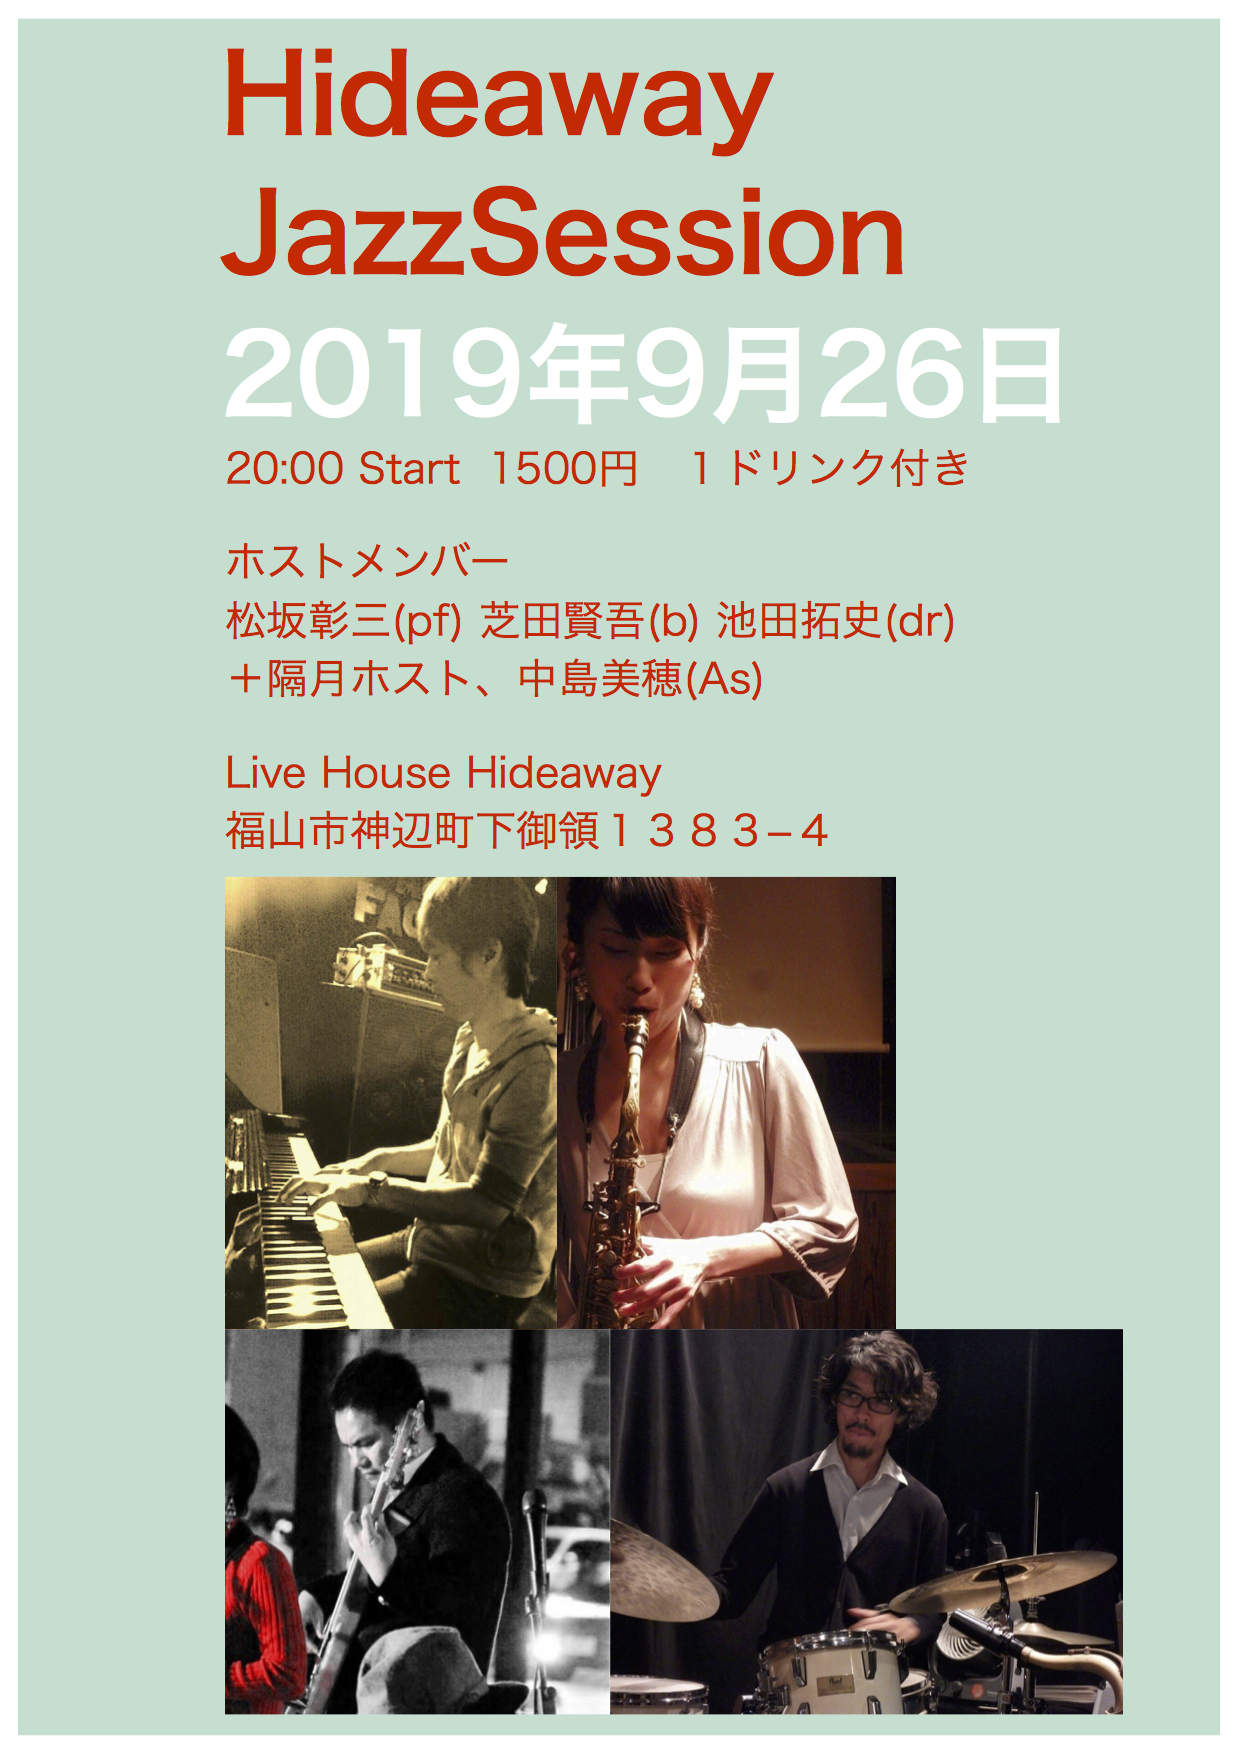 newsession20190926.jpg